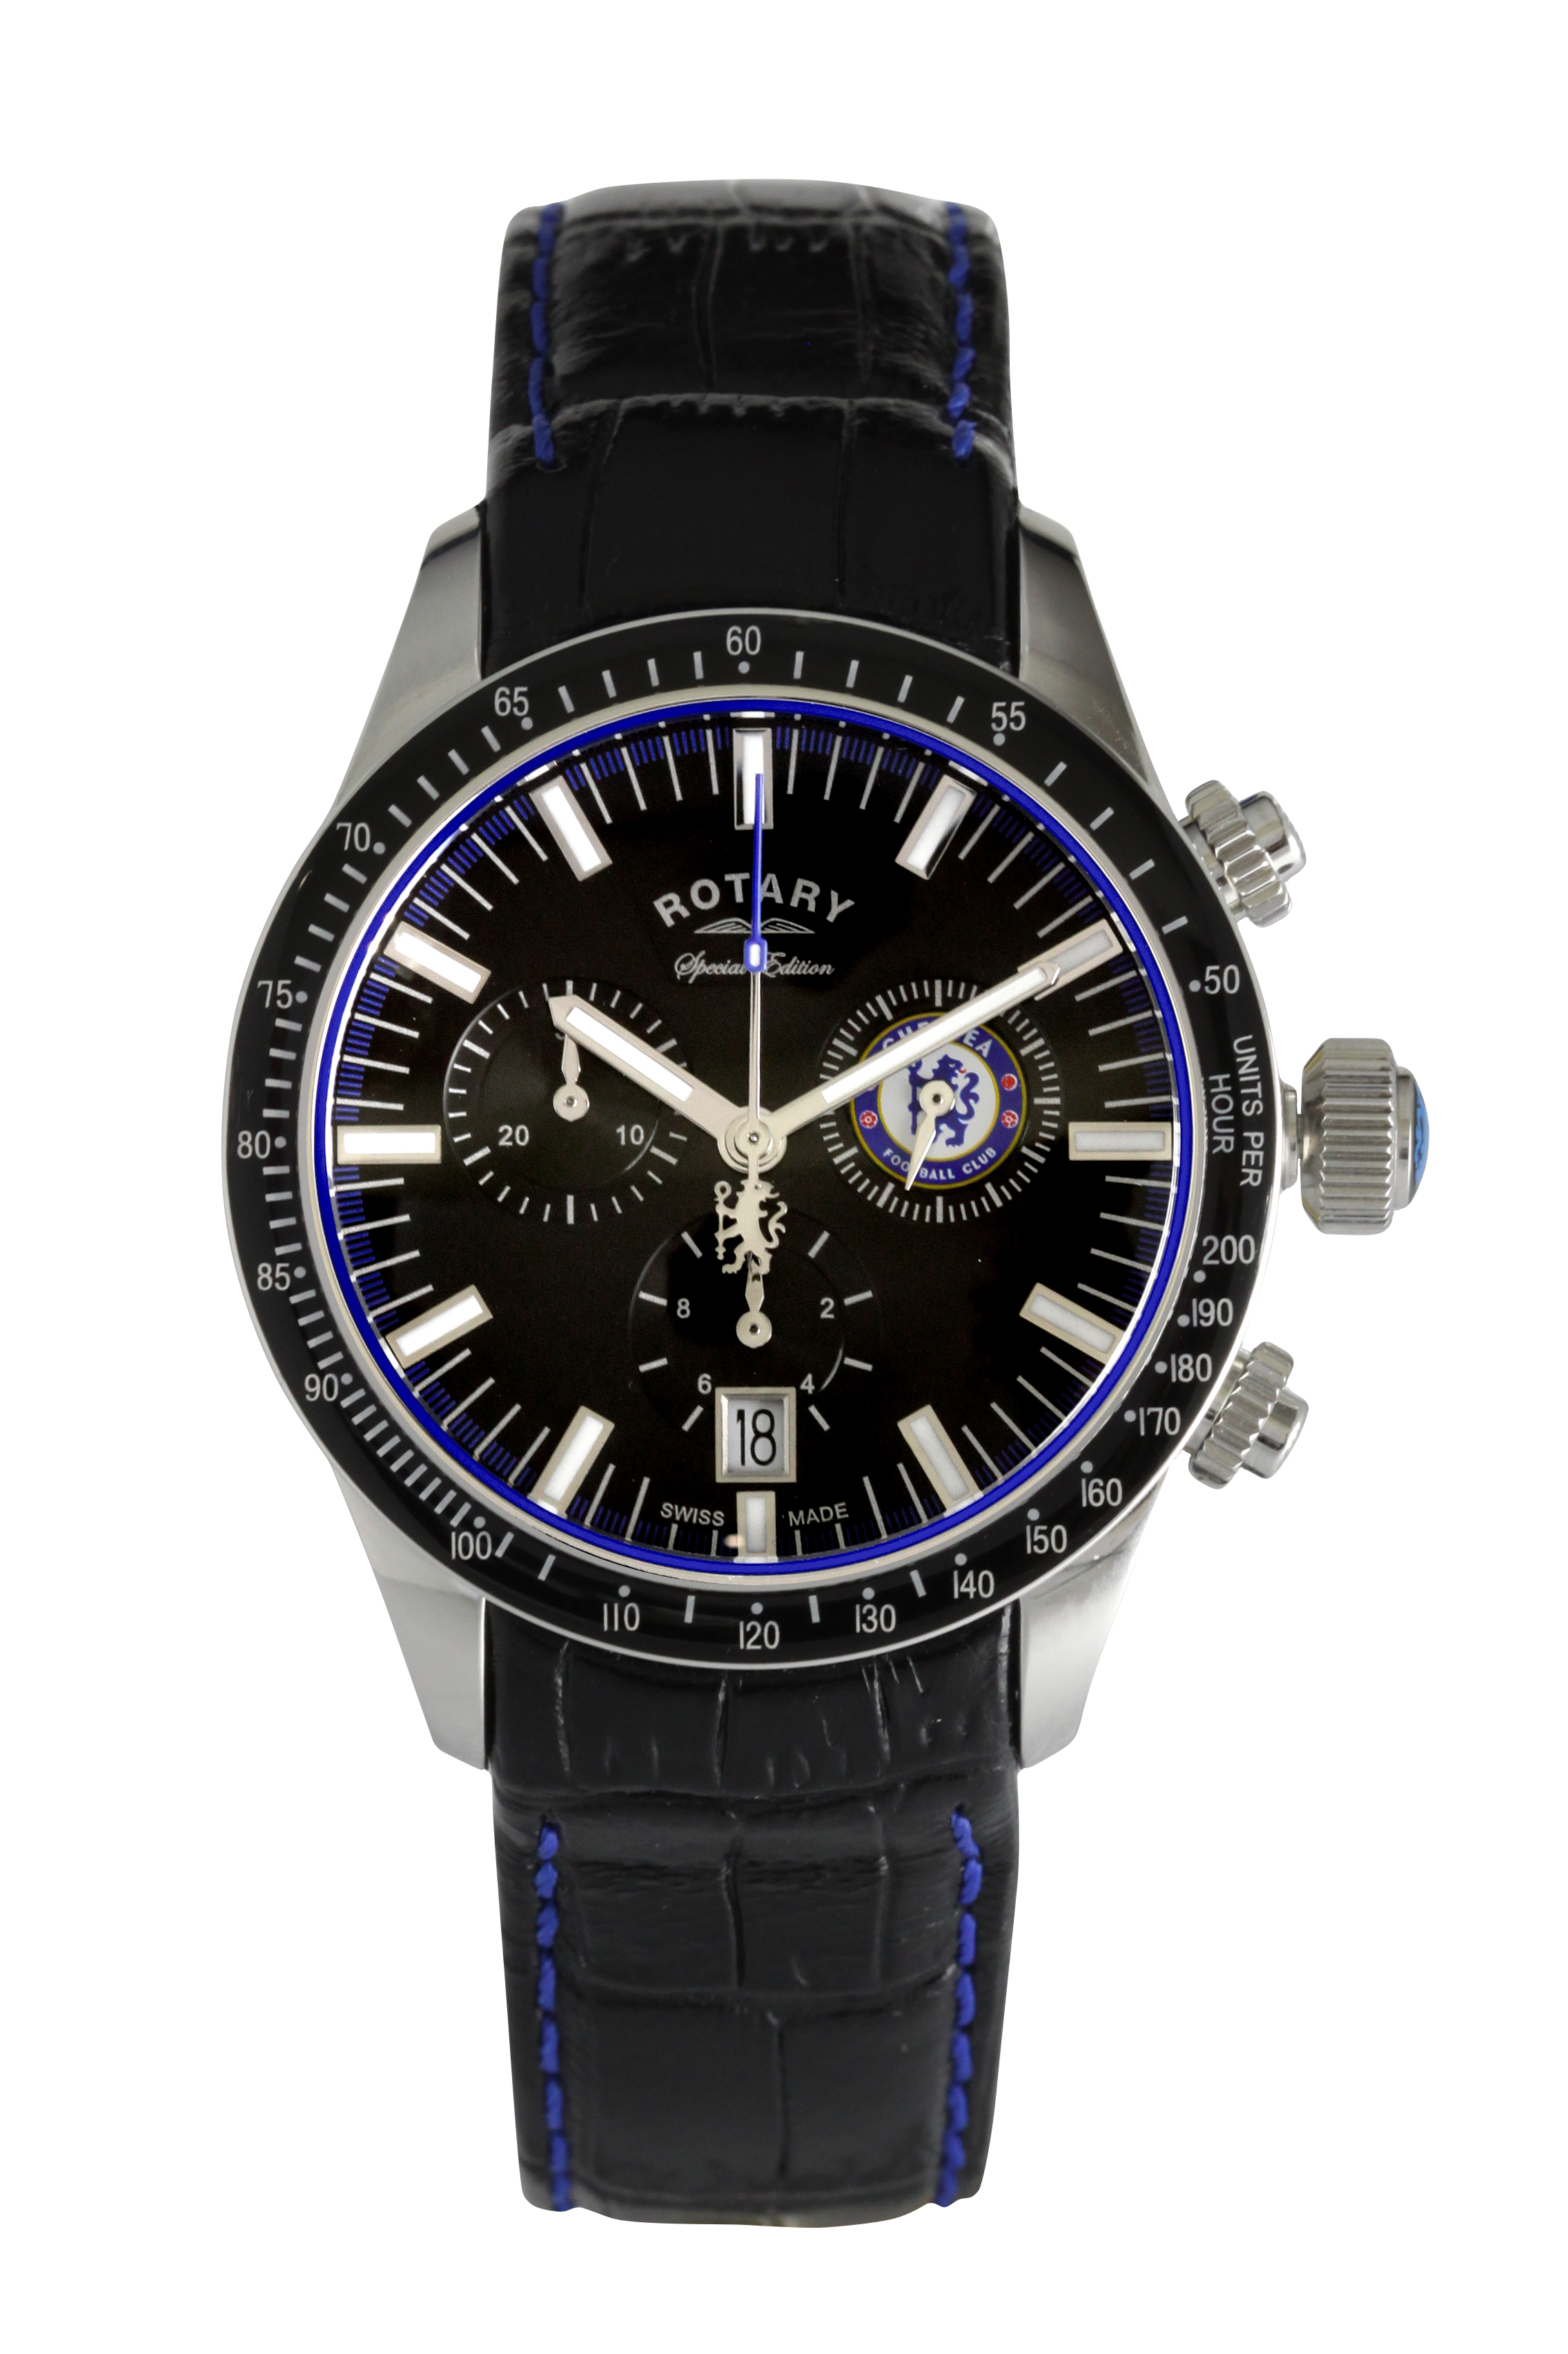 WIN! One of two Rotary Chronograph Chelsea FC watches worth £395